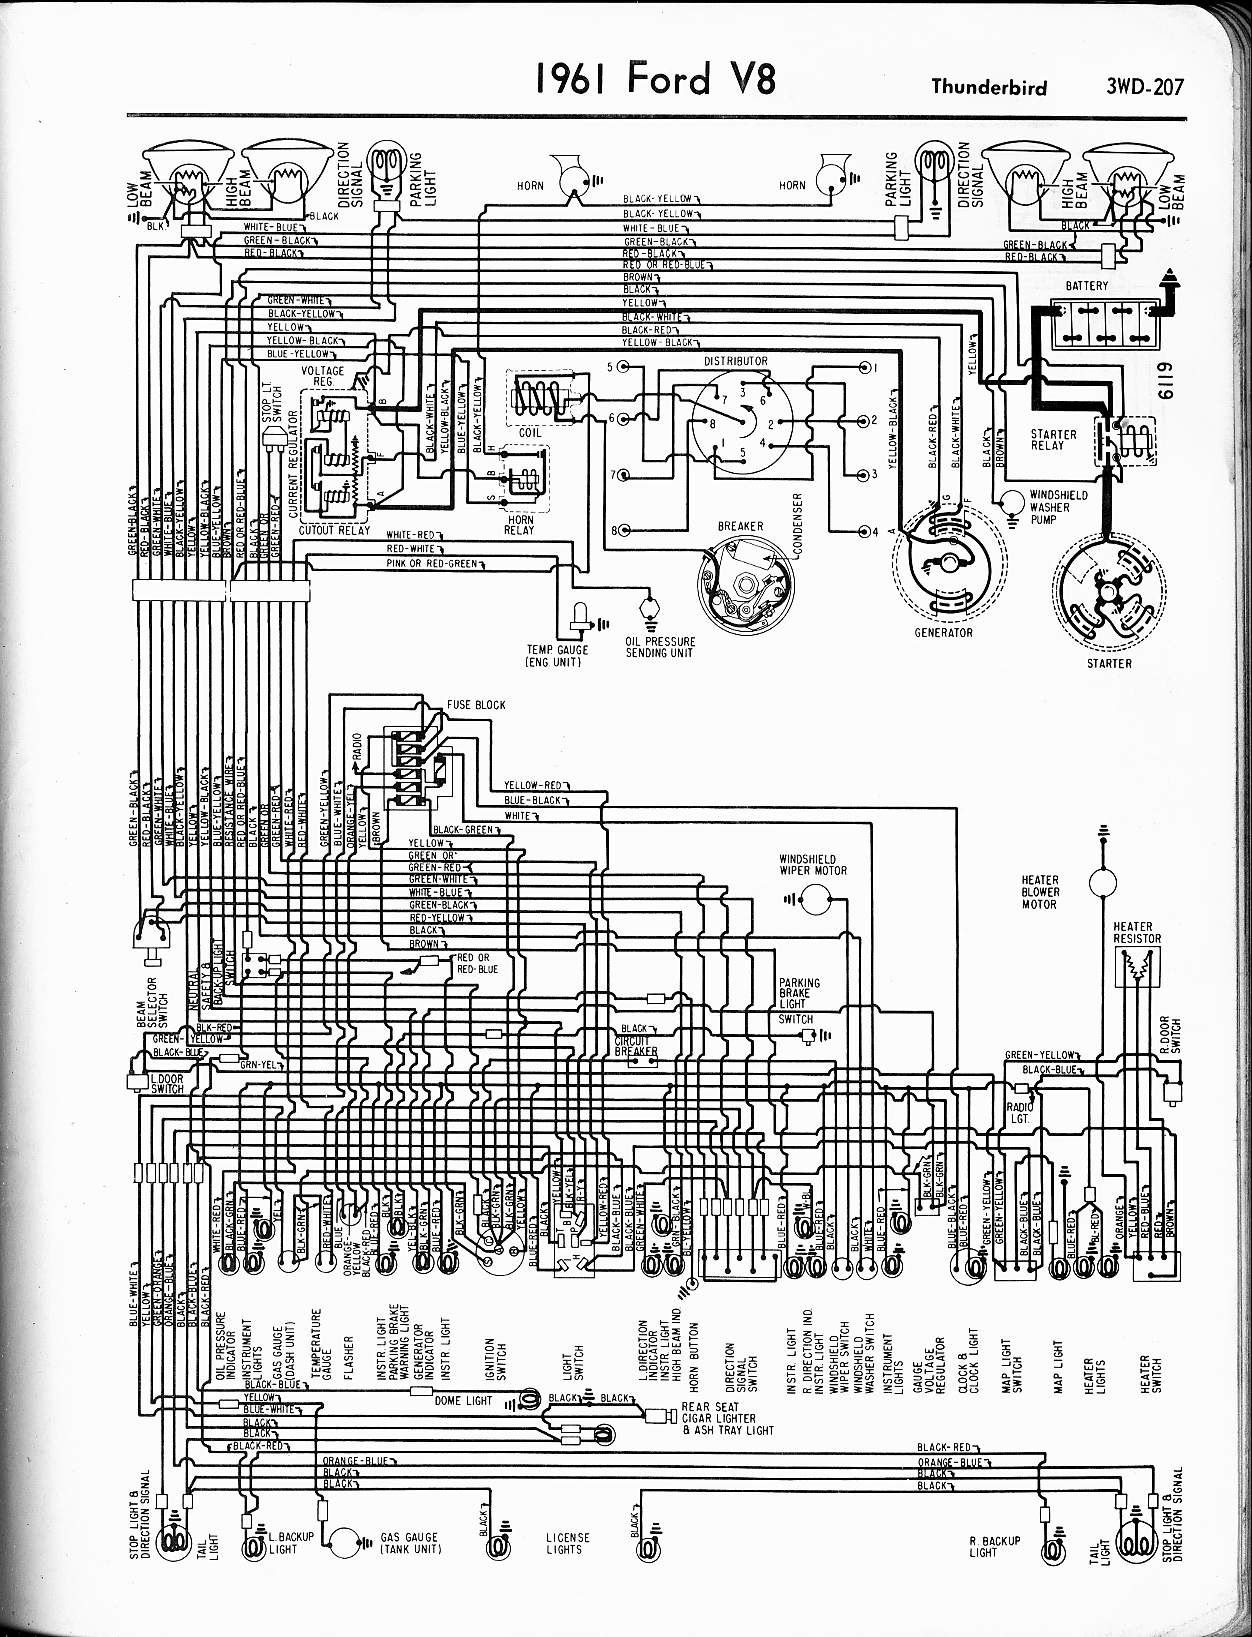 1955 Ford 8n 6 Volt Wiring Wire Data Schema Harness Thunderbird Coil Diagram House Rh Maxturner Co Generator Electrical